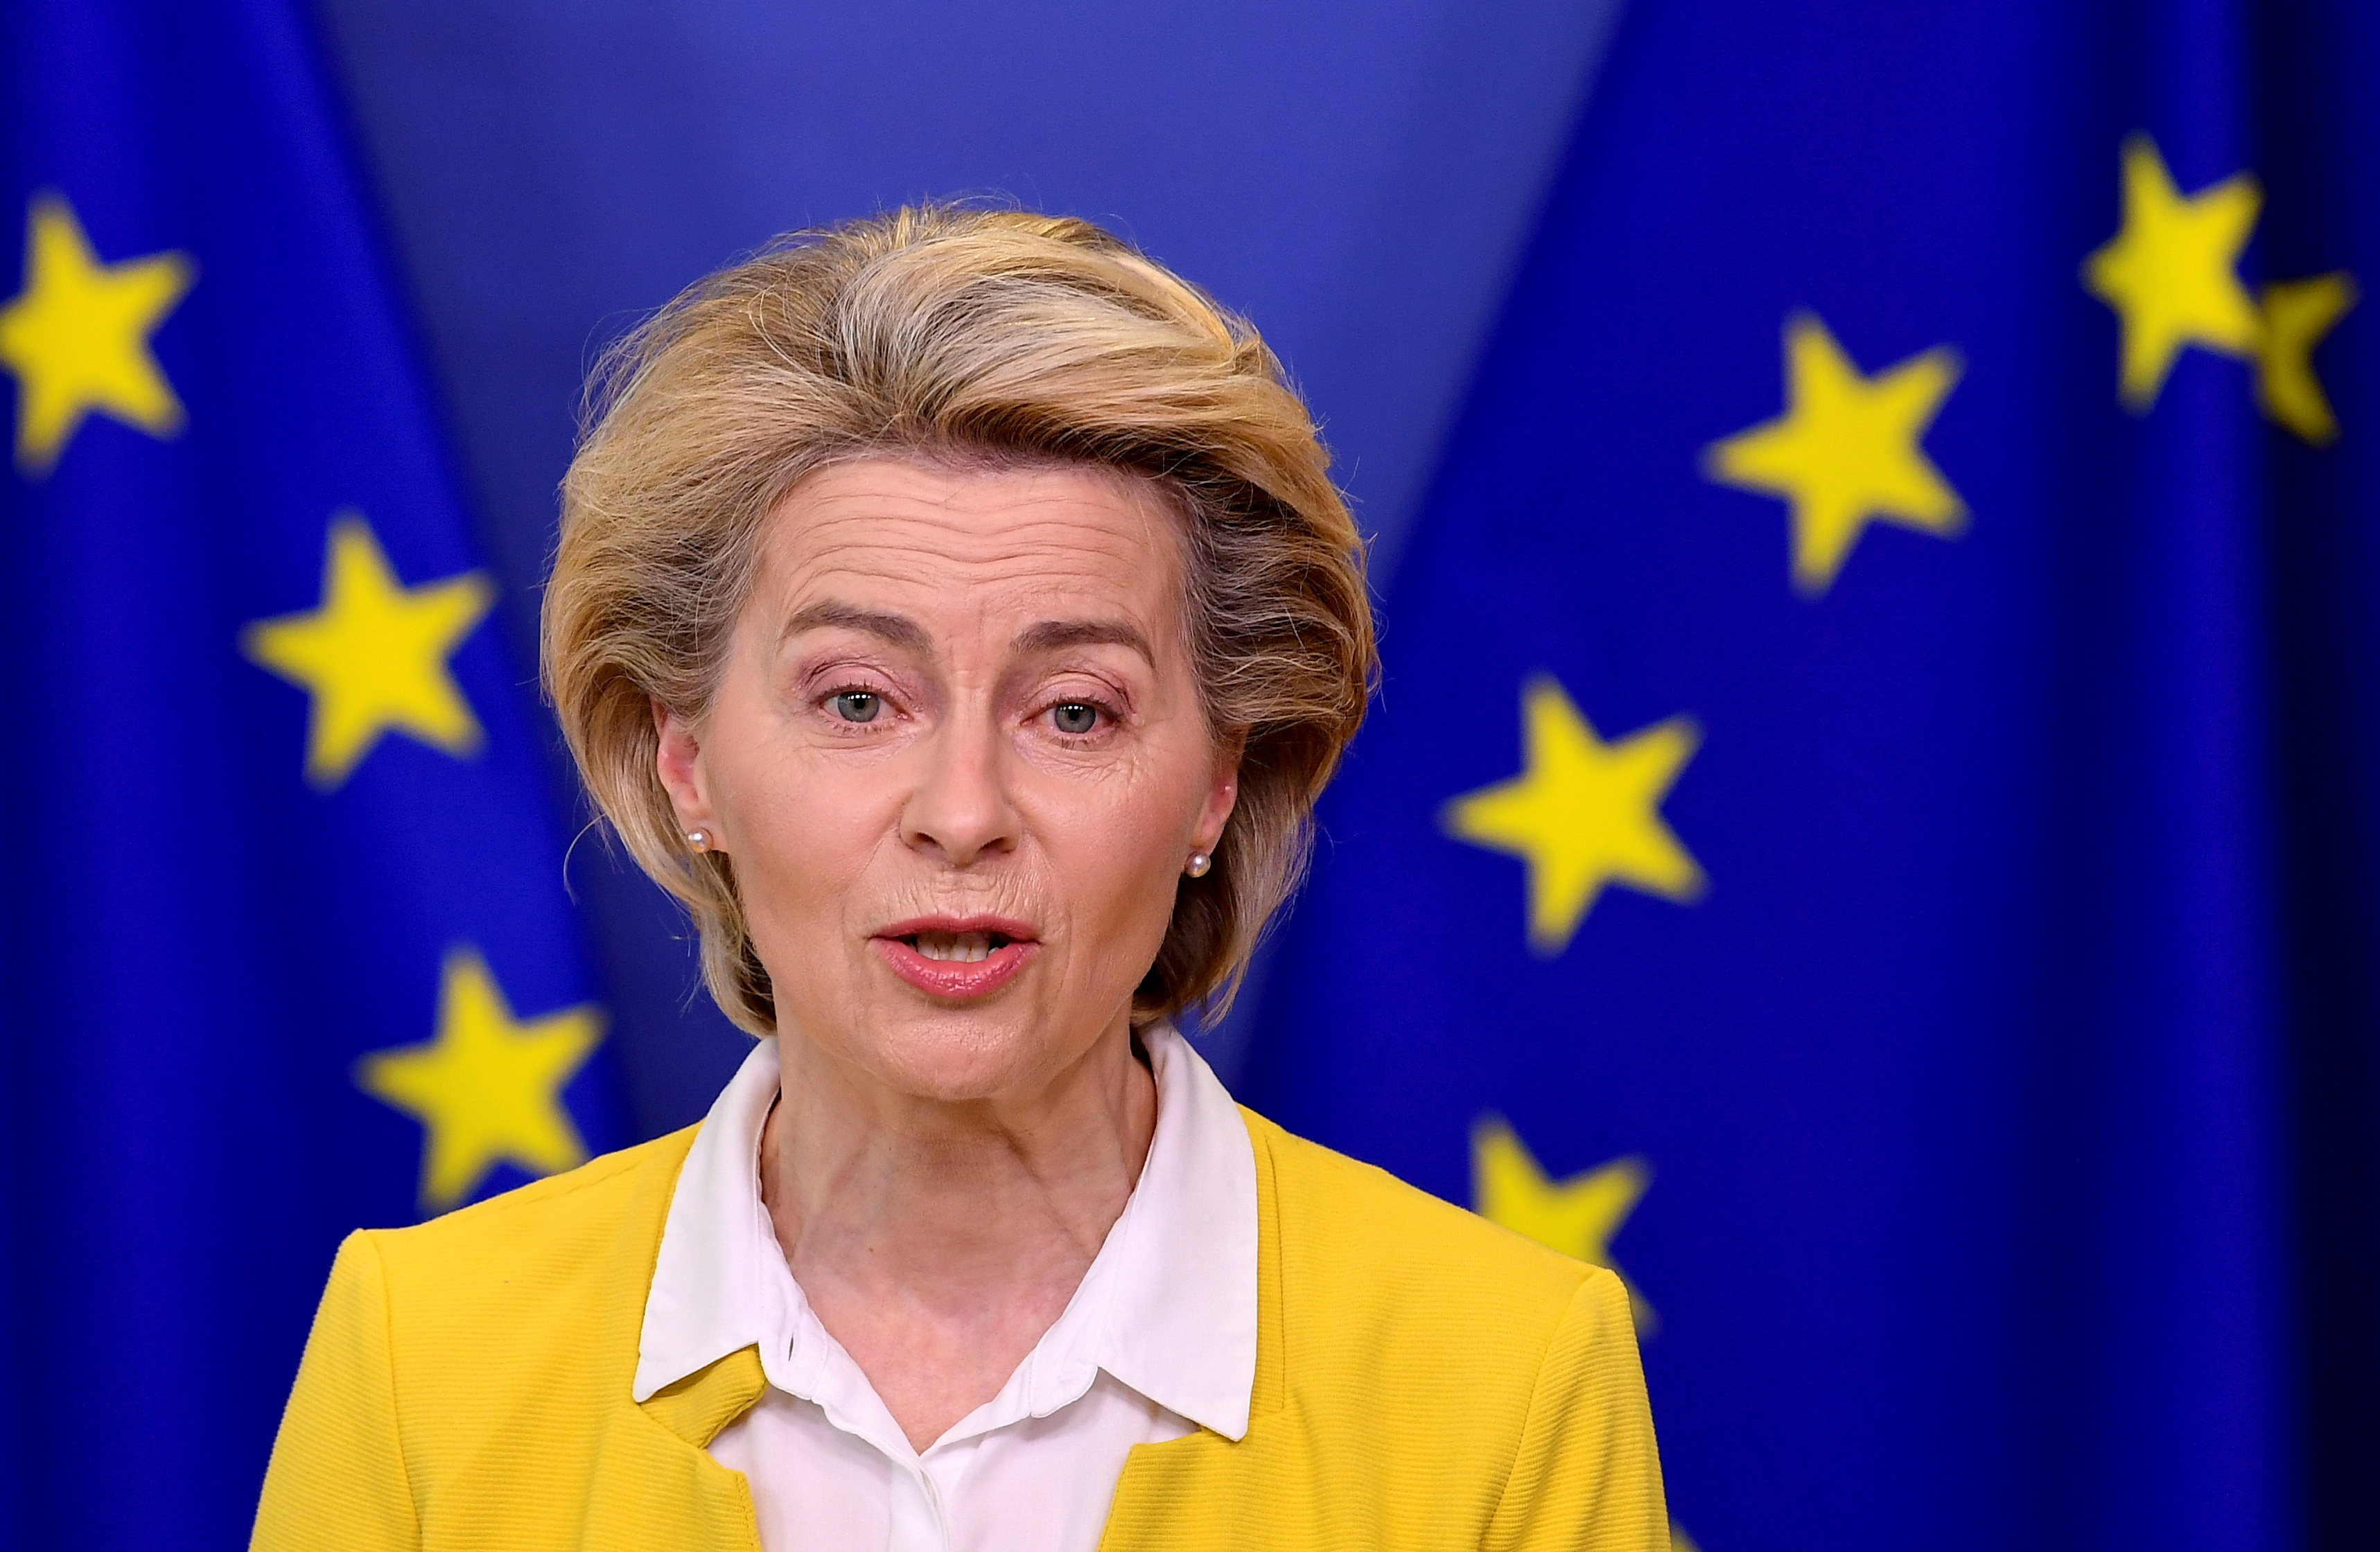 European Commission President Ursula von der Leyen delivers a statement on EU's coronavirus disease (COVID-19) vaccine strategy, following a college meeting at the EU Commission headquarters in Brussels, Belgium April 14, 2021. John Thys/Pool via REUTERS/File Photo